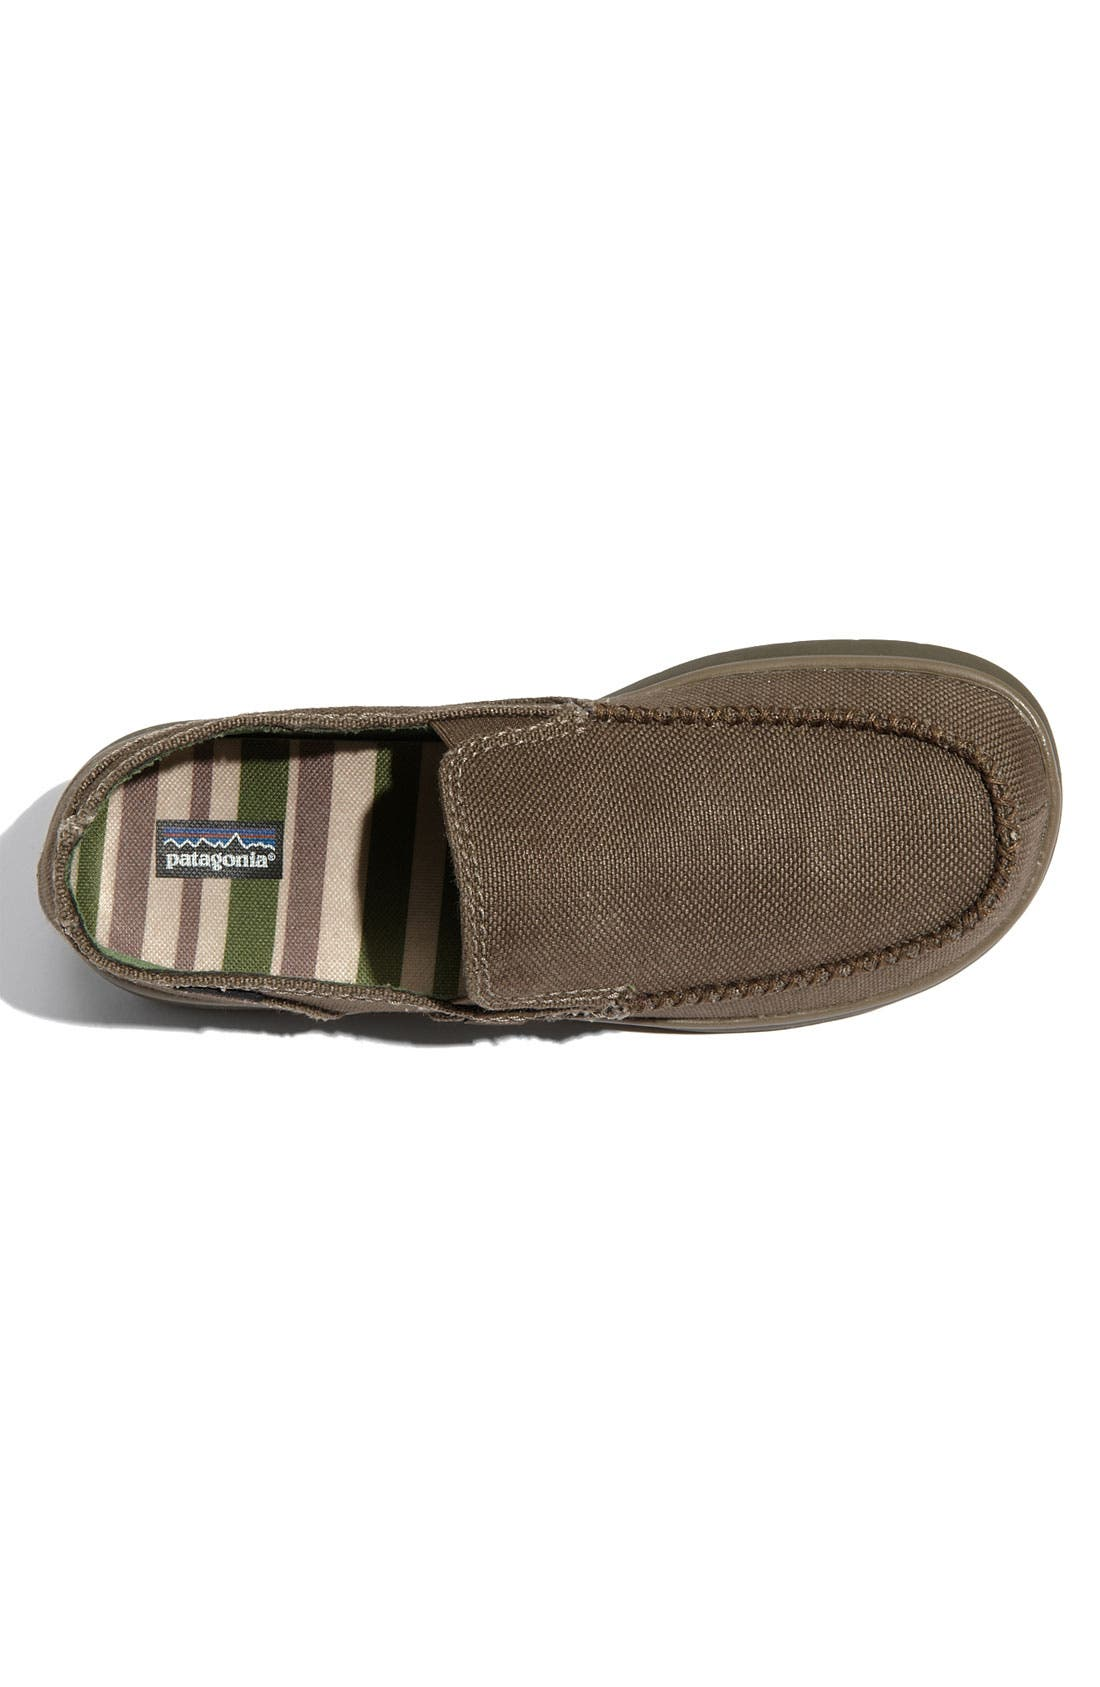 Alternate Image 3  - Patagonia 'Naked Maui' Slip-On (Online Only)